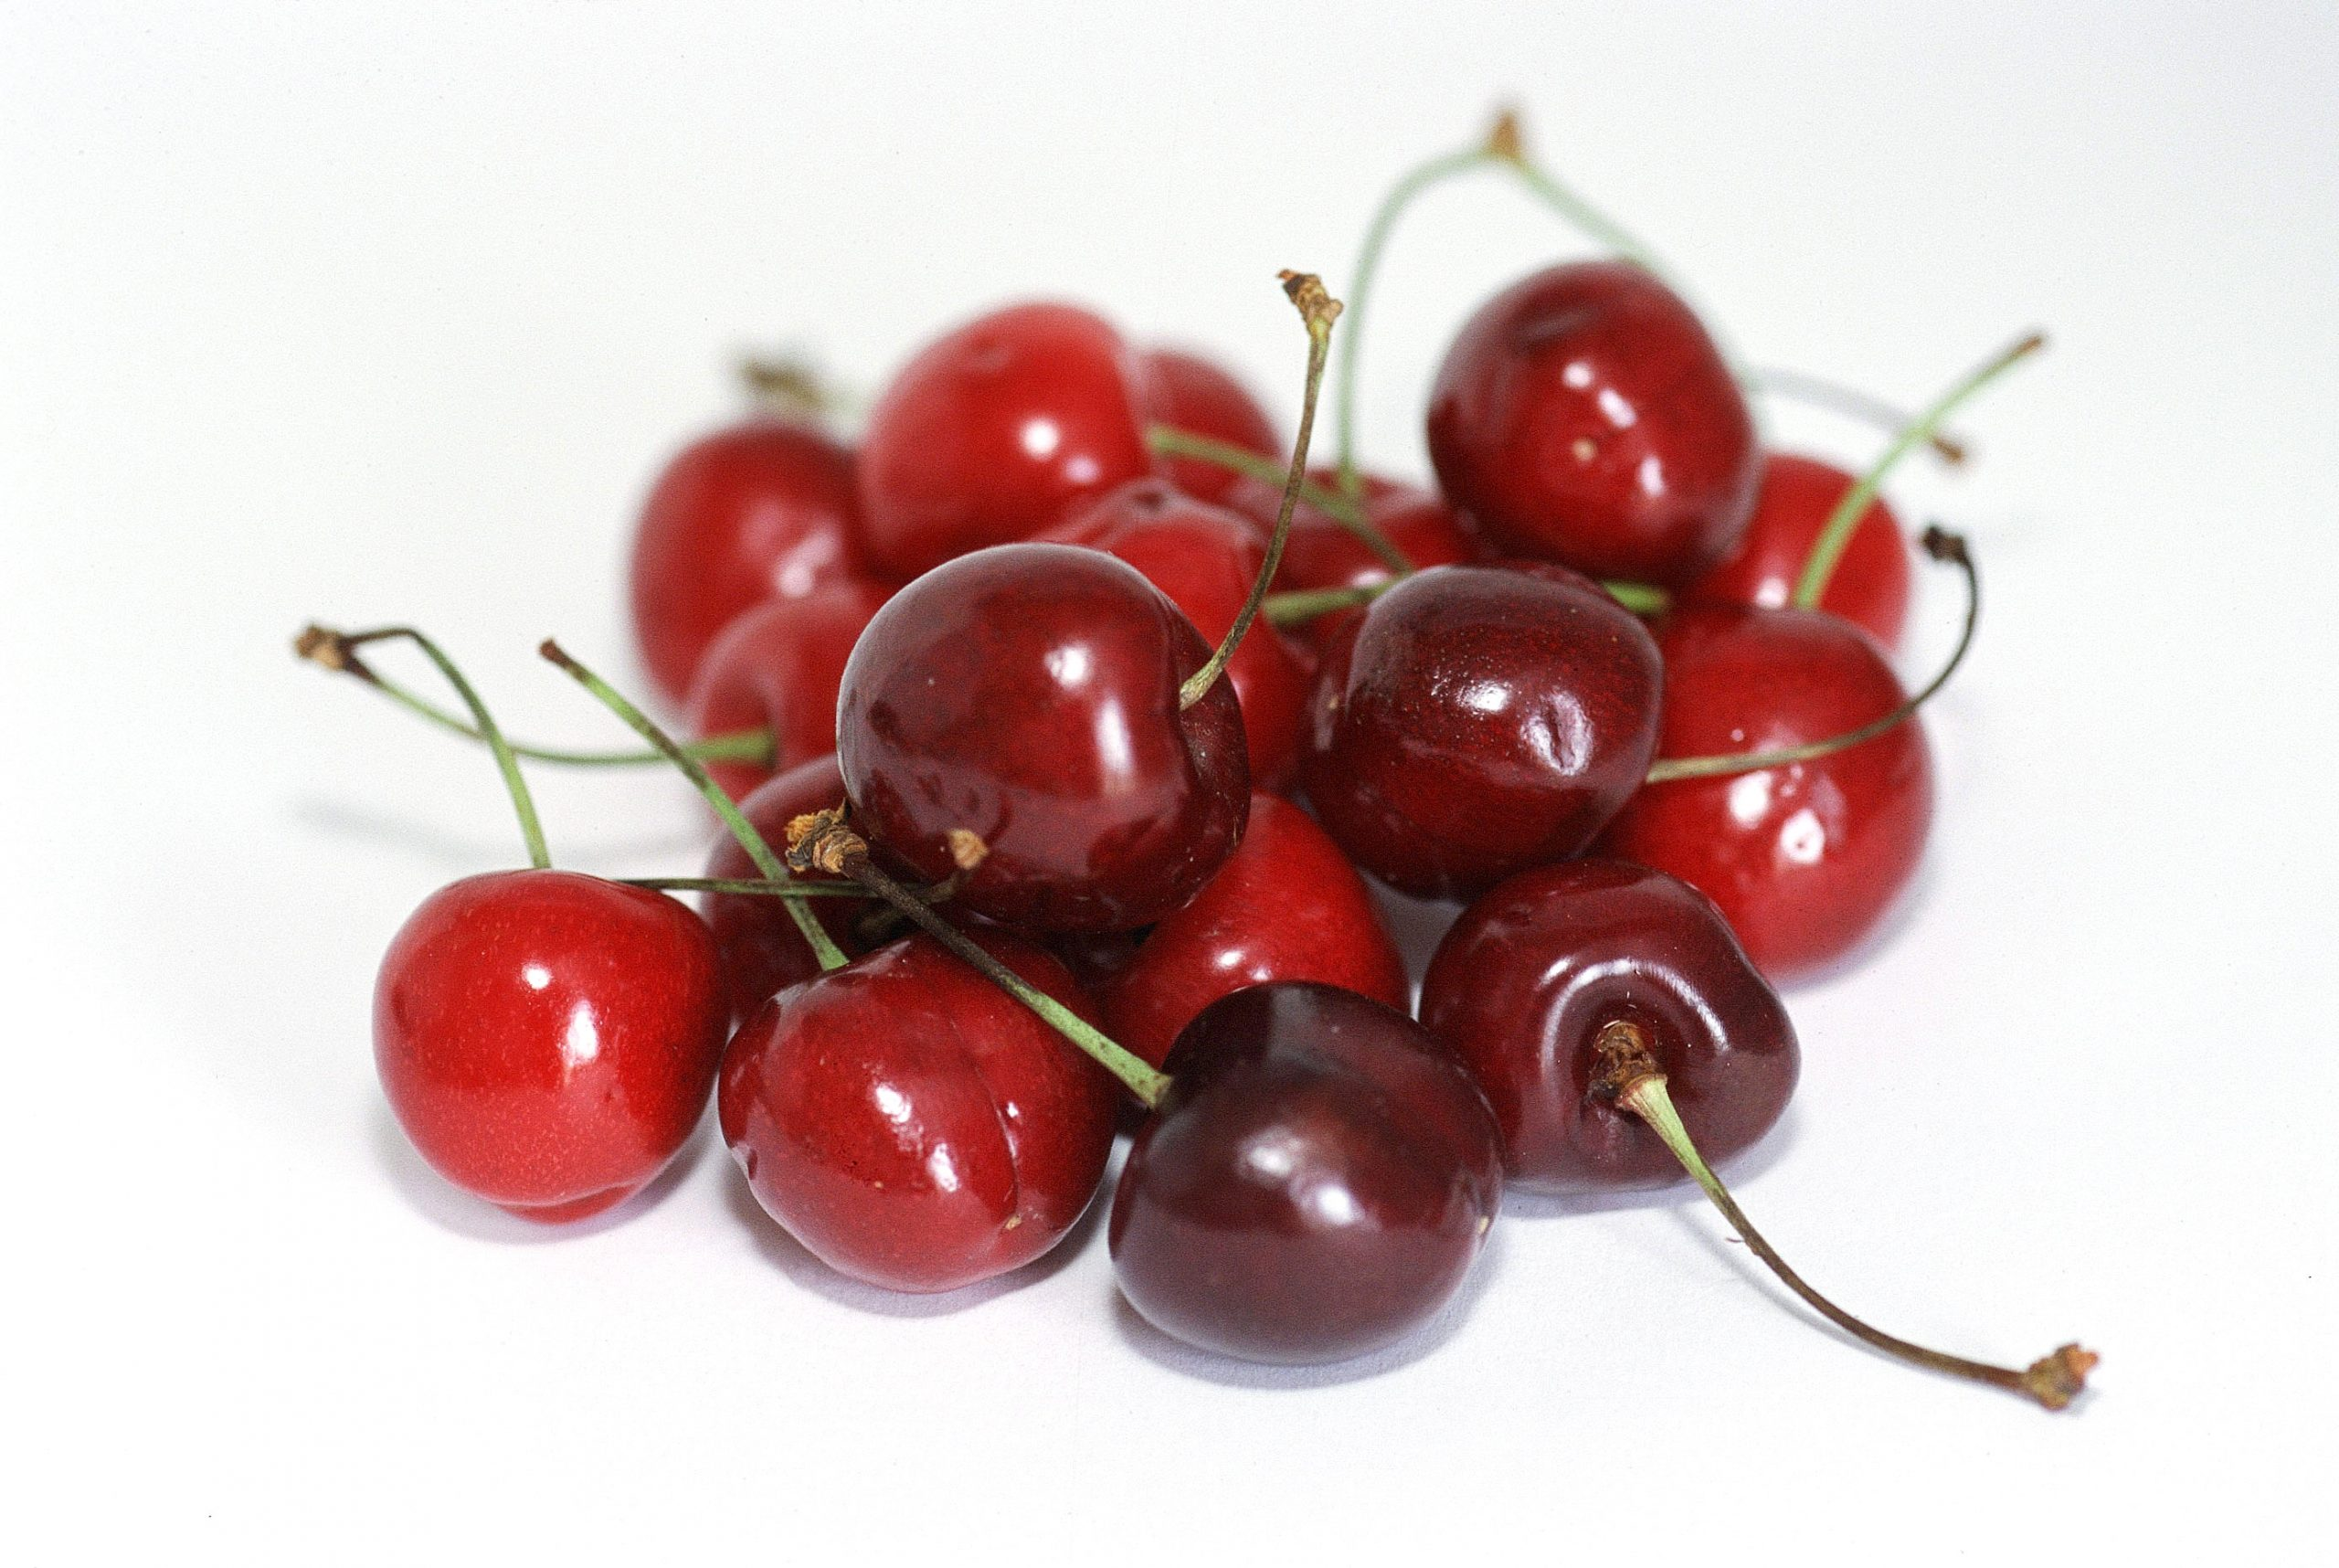 Of the 65 types of fruit and vegetables exported by Uzbekistan in 2016, fresh sweet cherries had the highest share in terms of value (14.4%), followed by raisins (12.8%) and fresh apricots (7.63%).